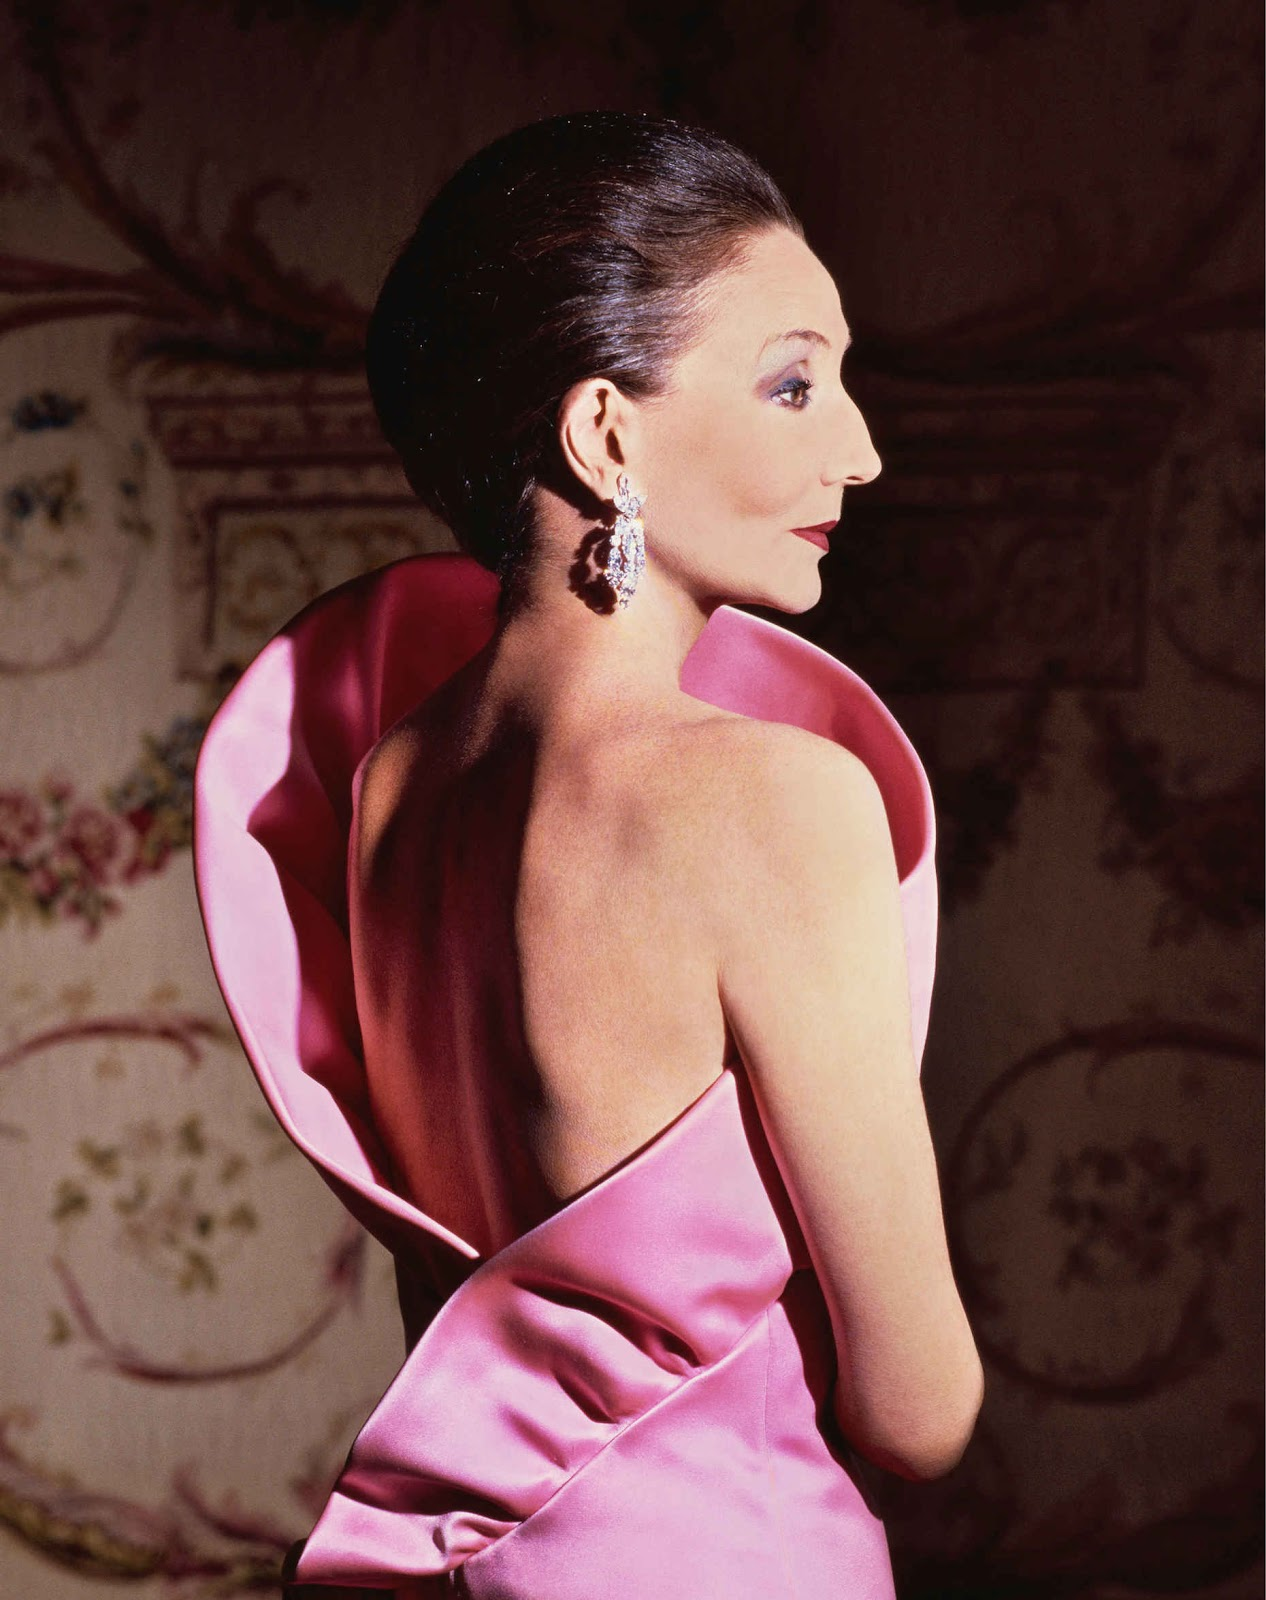 Jacqueline de Ribes in her own design (1983). Photograph by Victor Skrebneski, Skrebneski Photograph © 1983. Image: Courtesy of the Metropolitan Museum of Art.